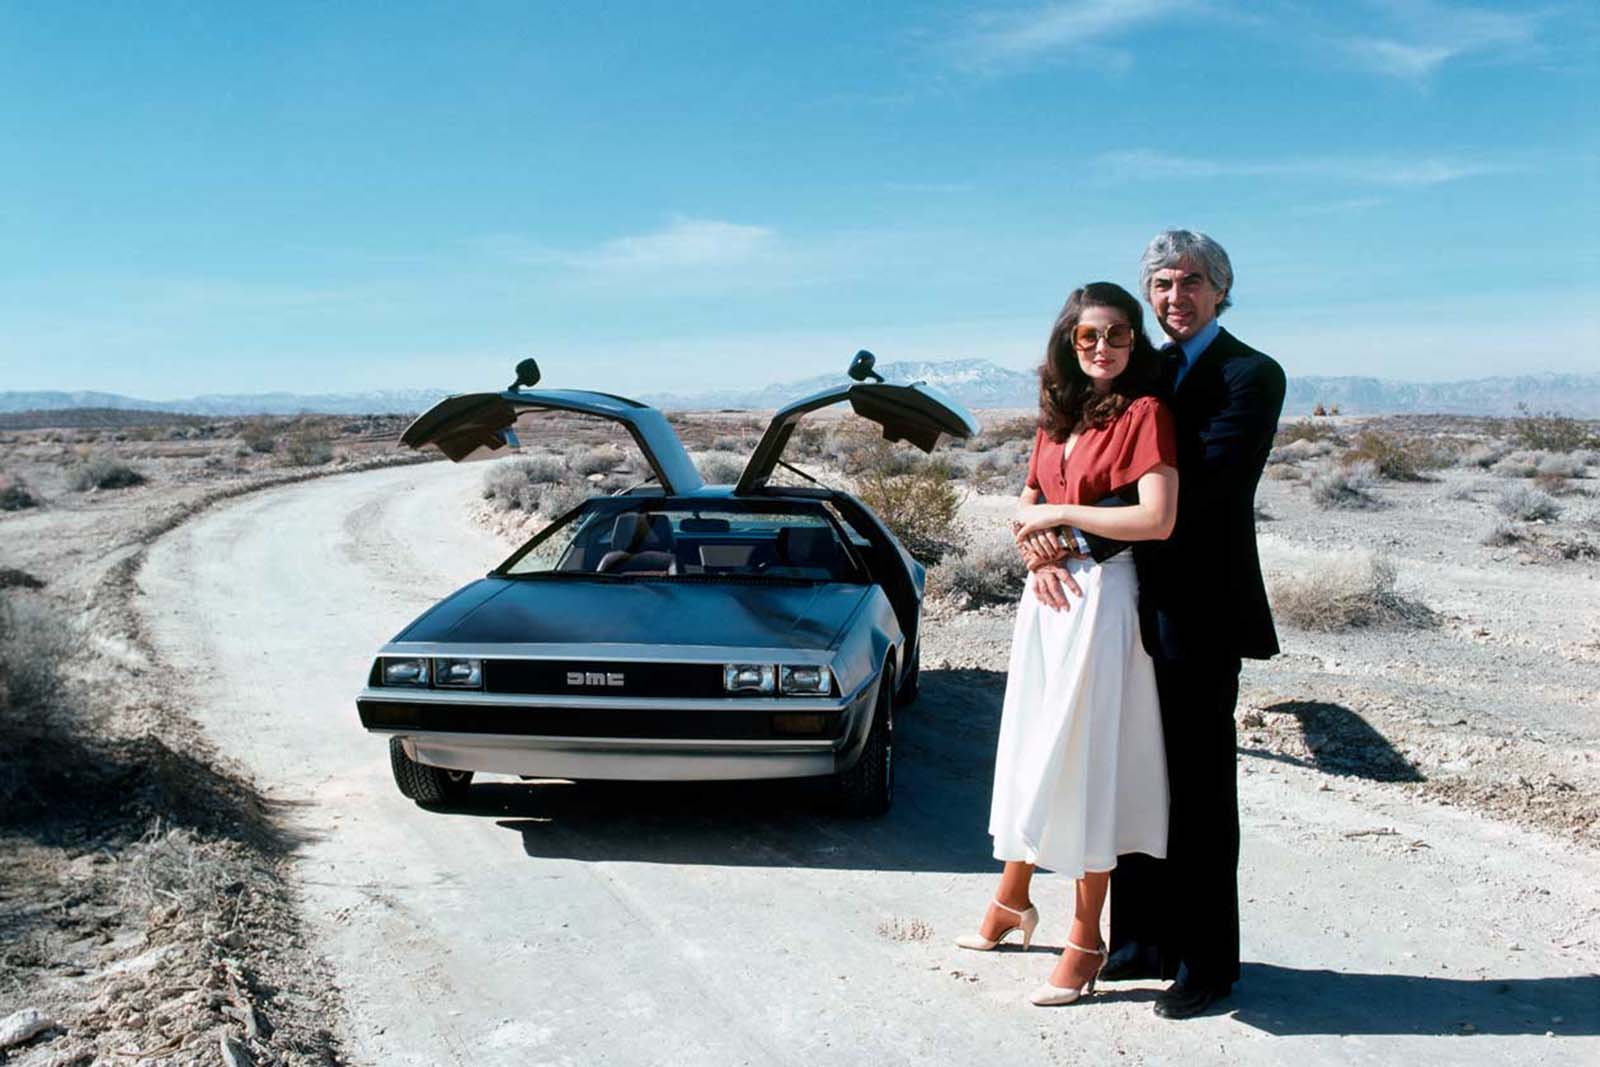 DeLorean and his wife in the desert. 1980.